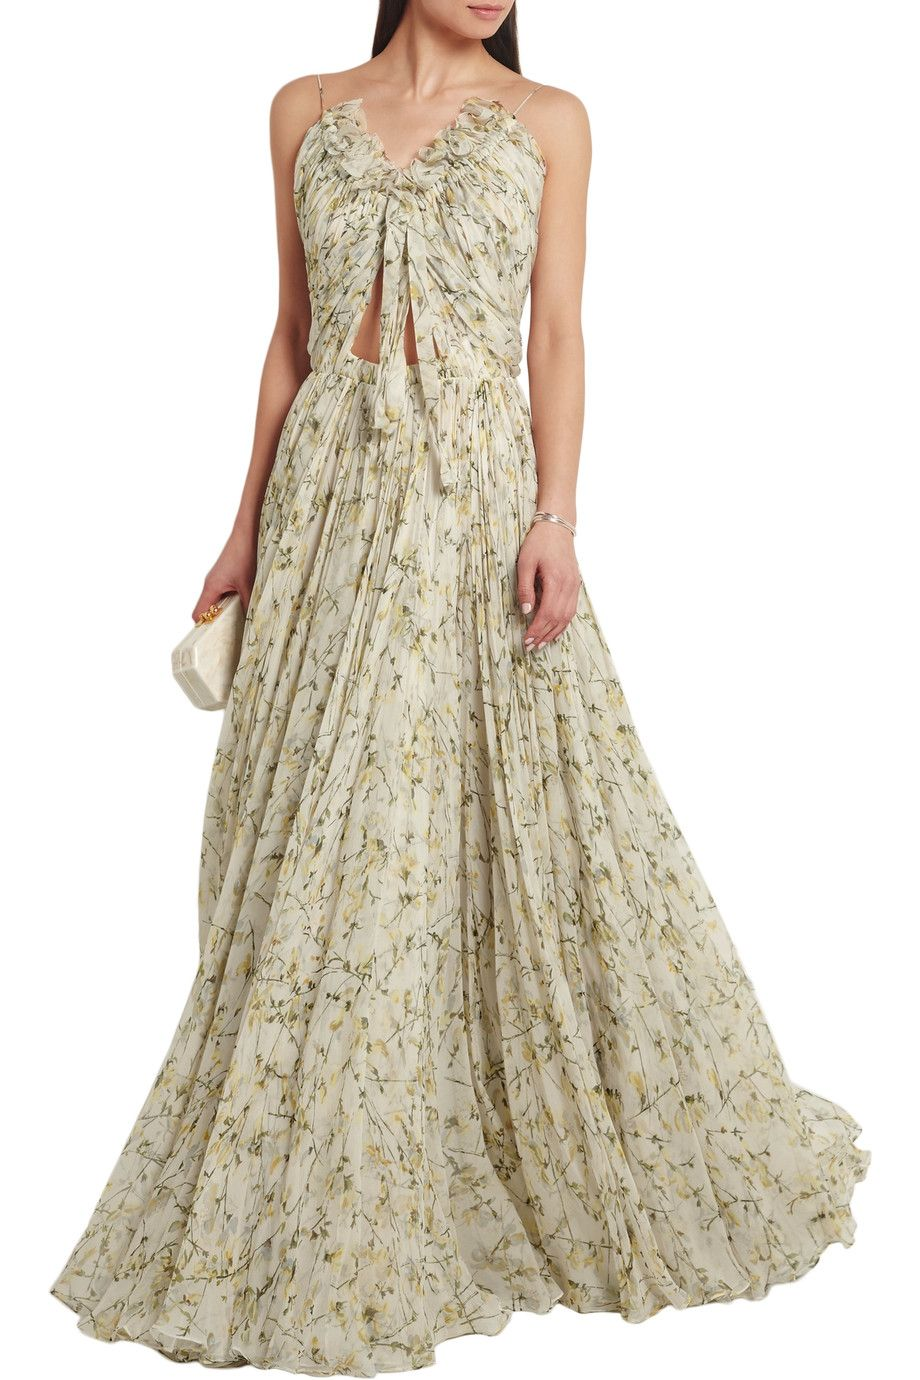 Designer Occasion Wear For Less | Chiffon gown, Printed silk and ...